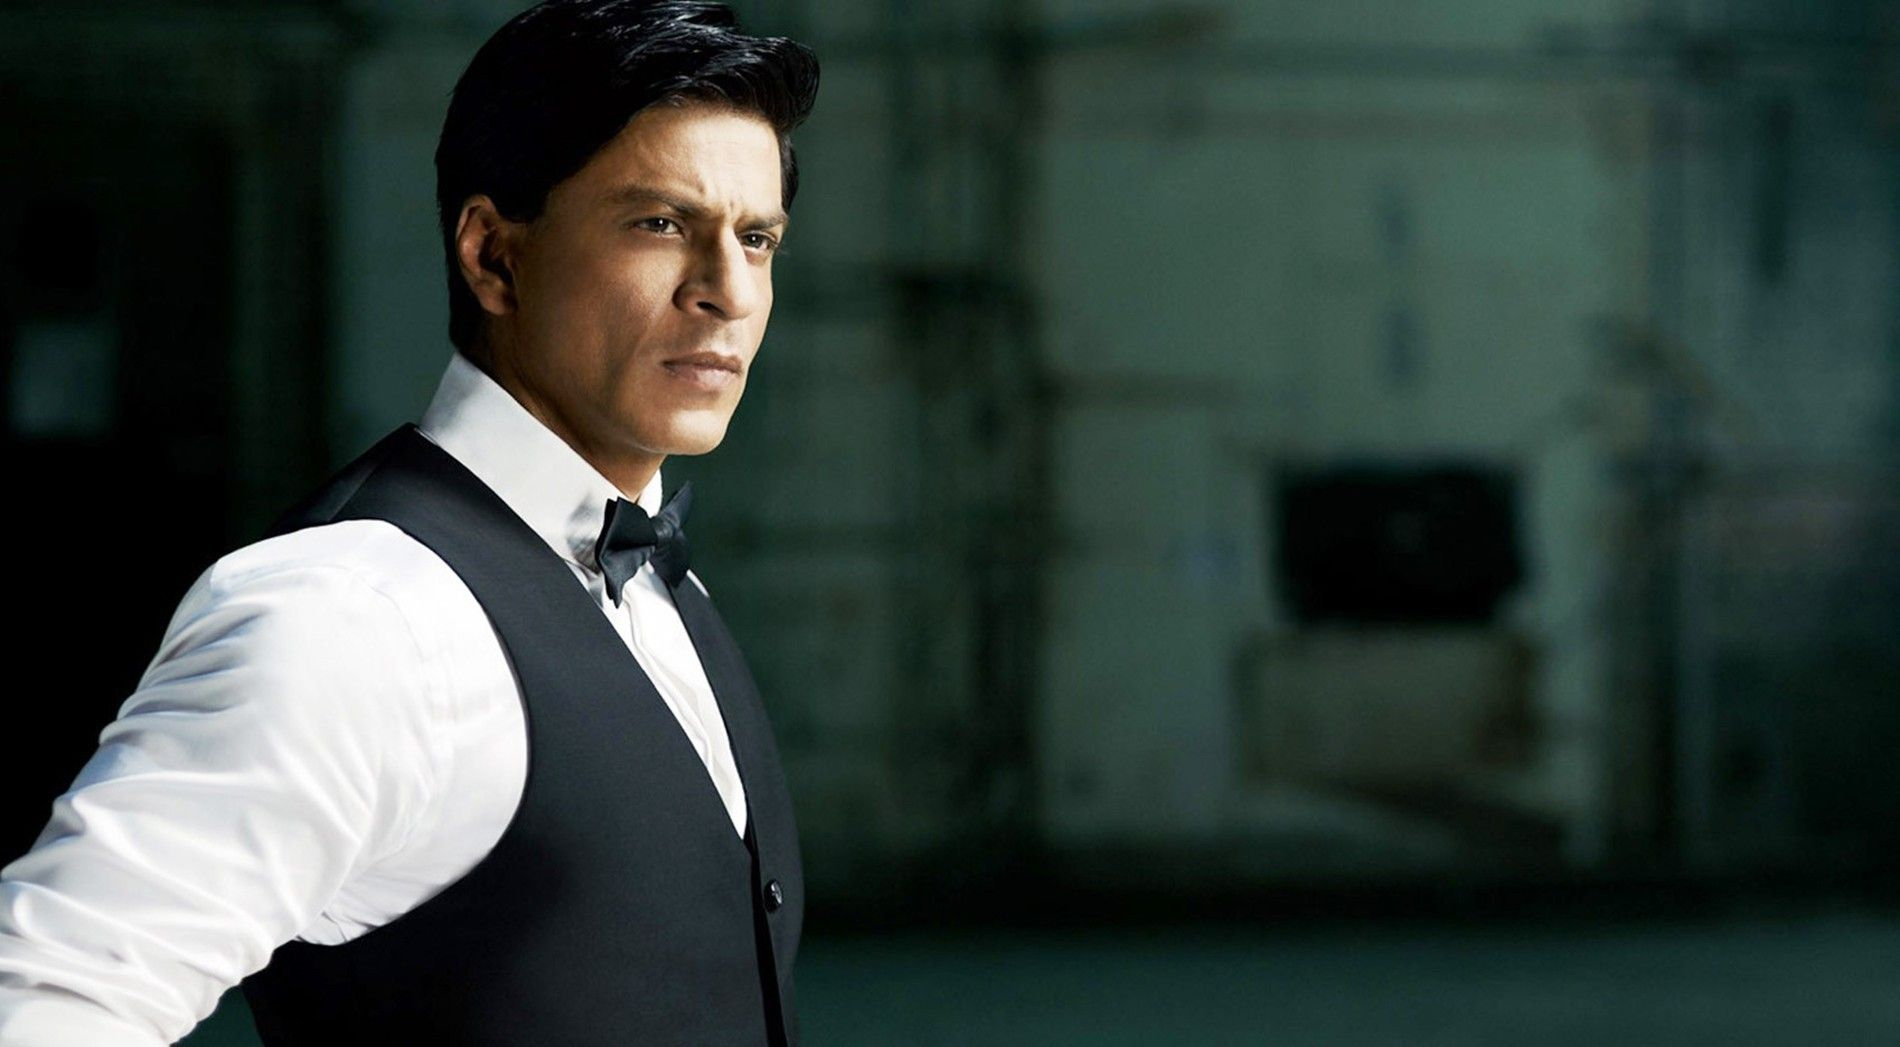 shah rukh khan hd desktop wallpapers | hd wallpapers | pinterest